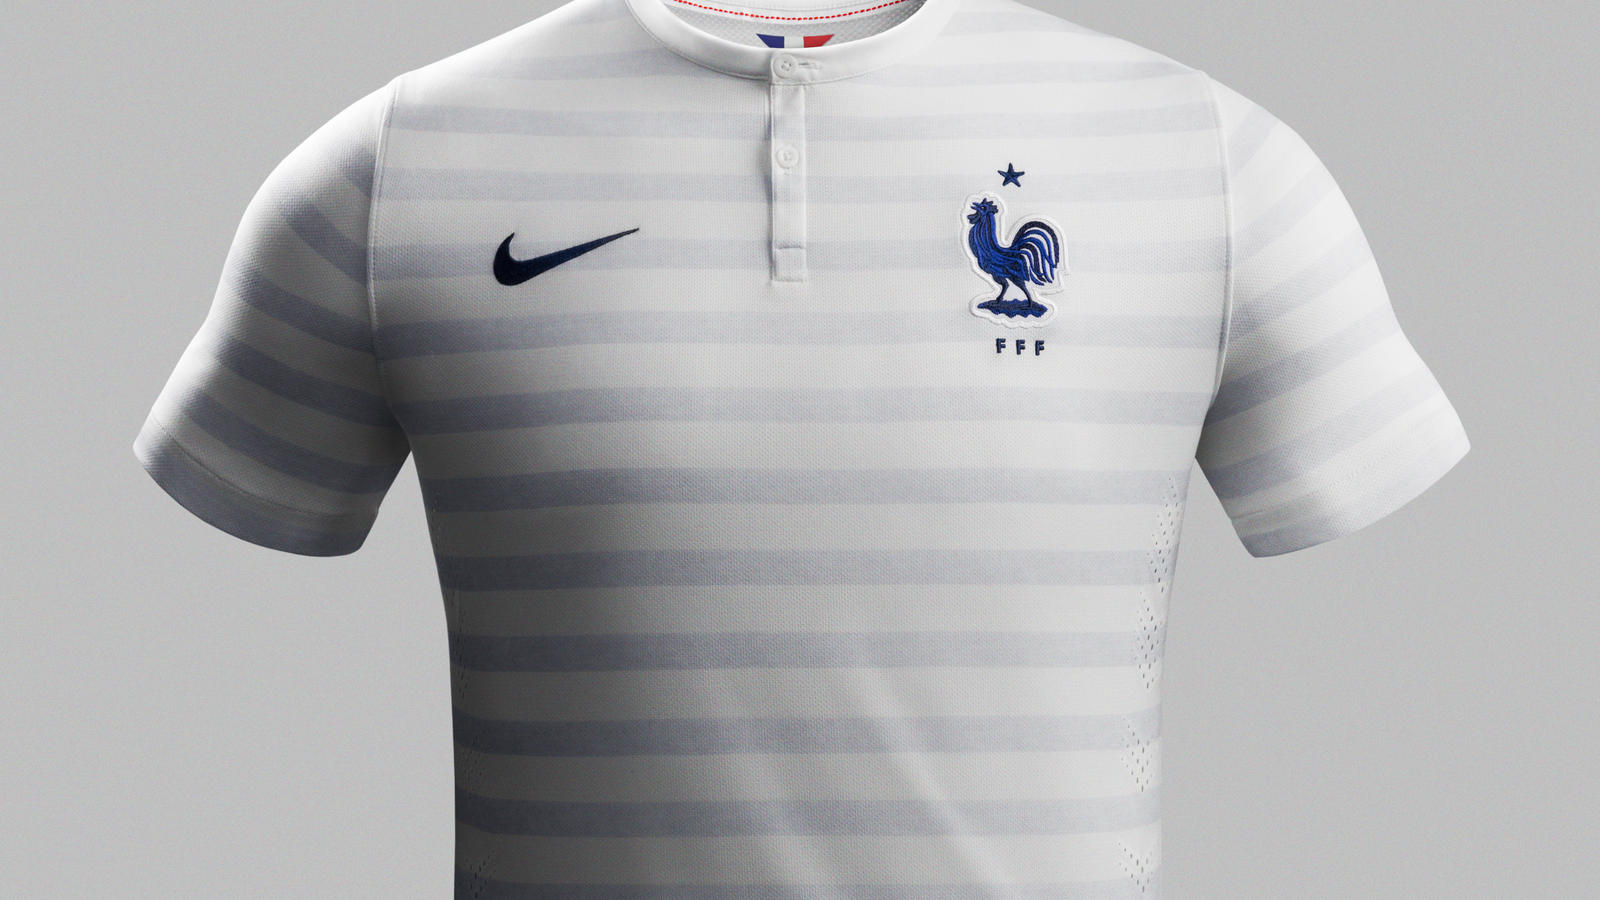 Football 2014 For French Away Federation Kit Nike New Unveils Oa14RcW